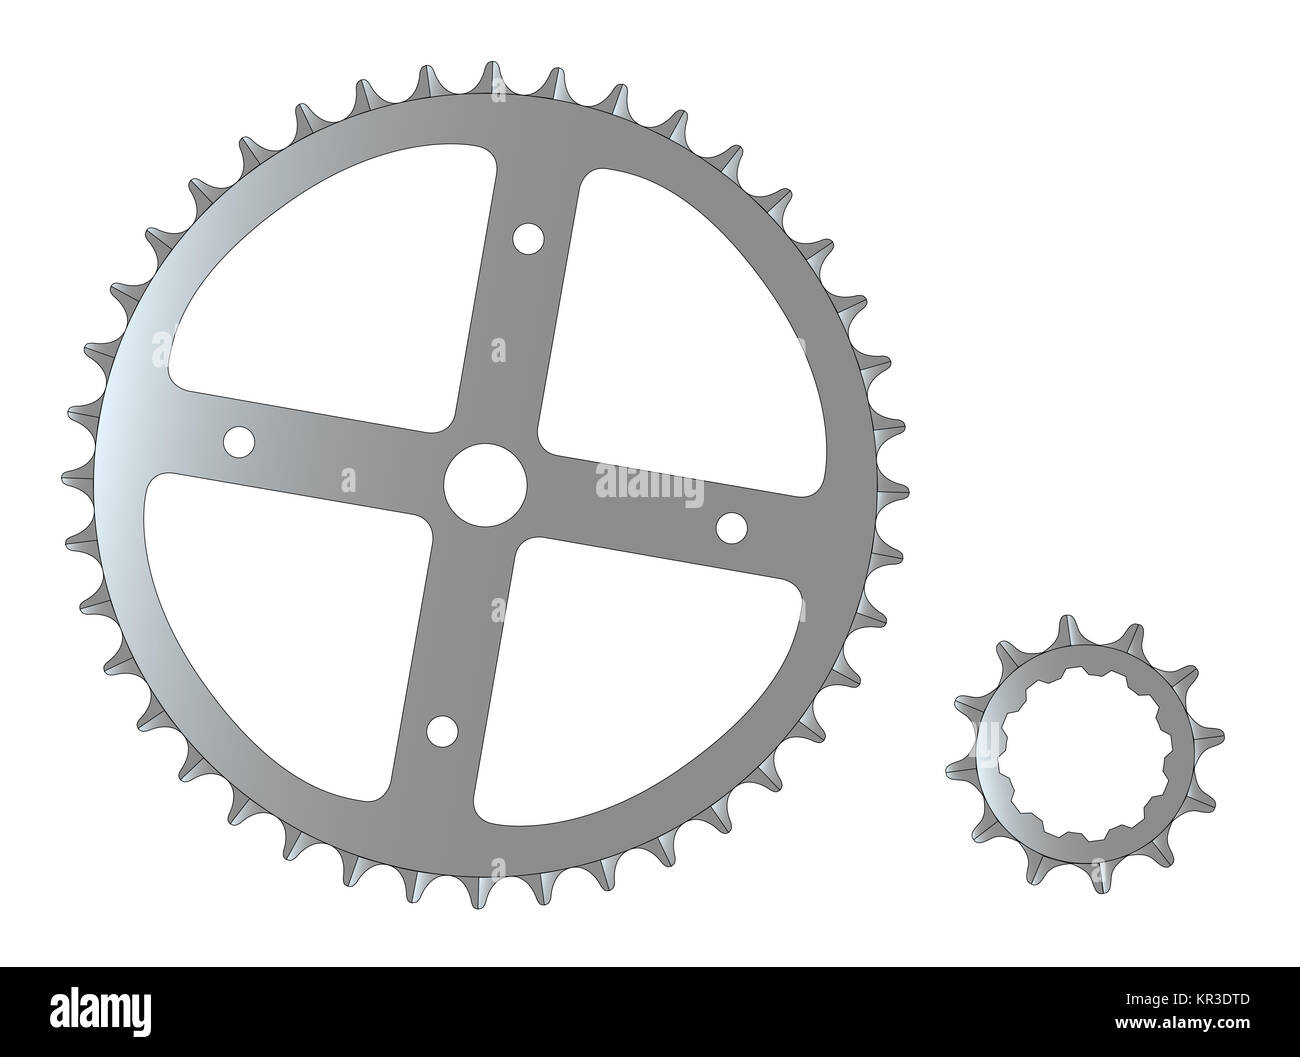 bike cog graphic stockfotos bike cog graphic bilder alamy. Black Bedroom Furniture Sets. Home Design Ideas